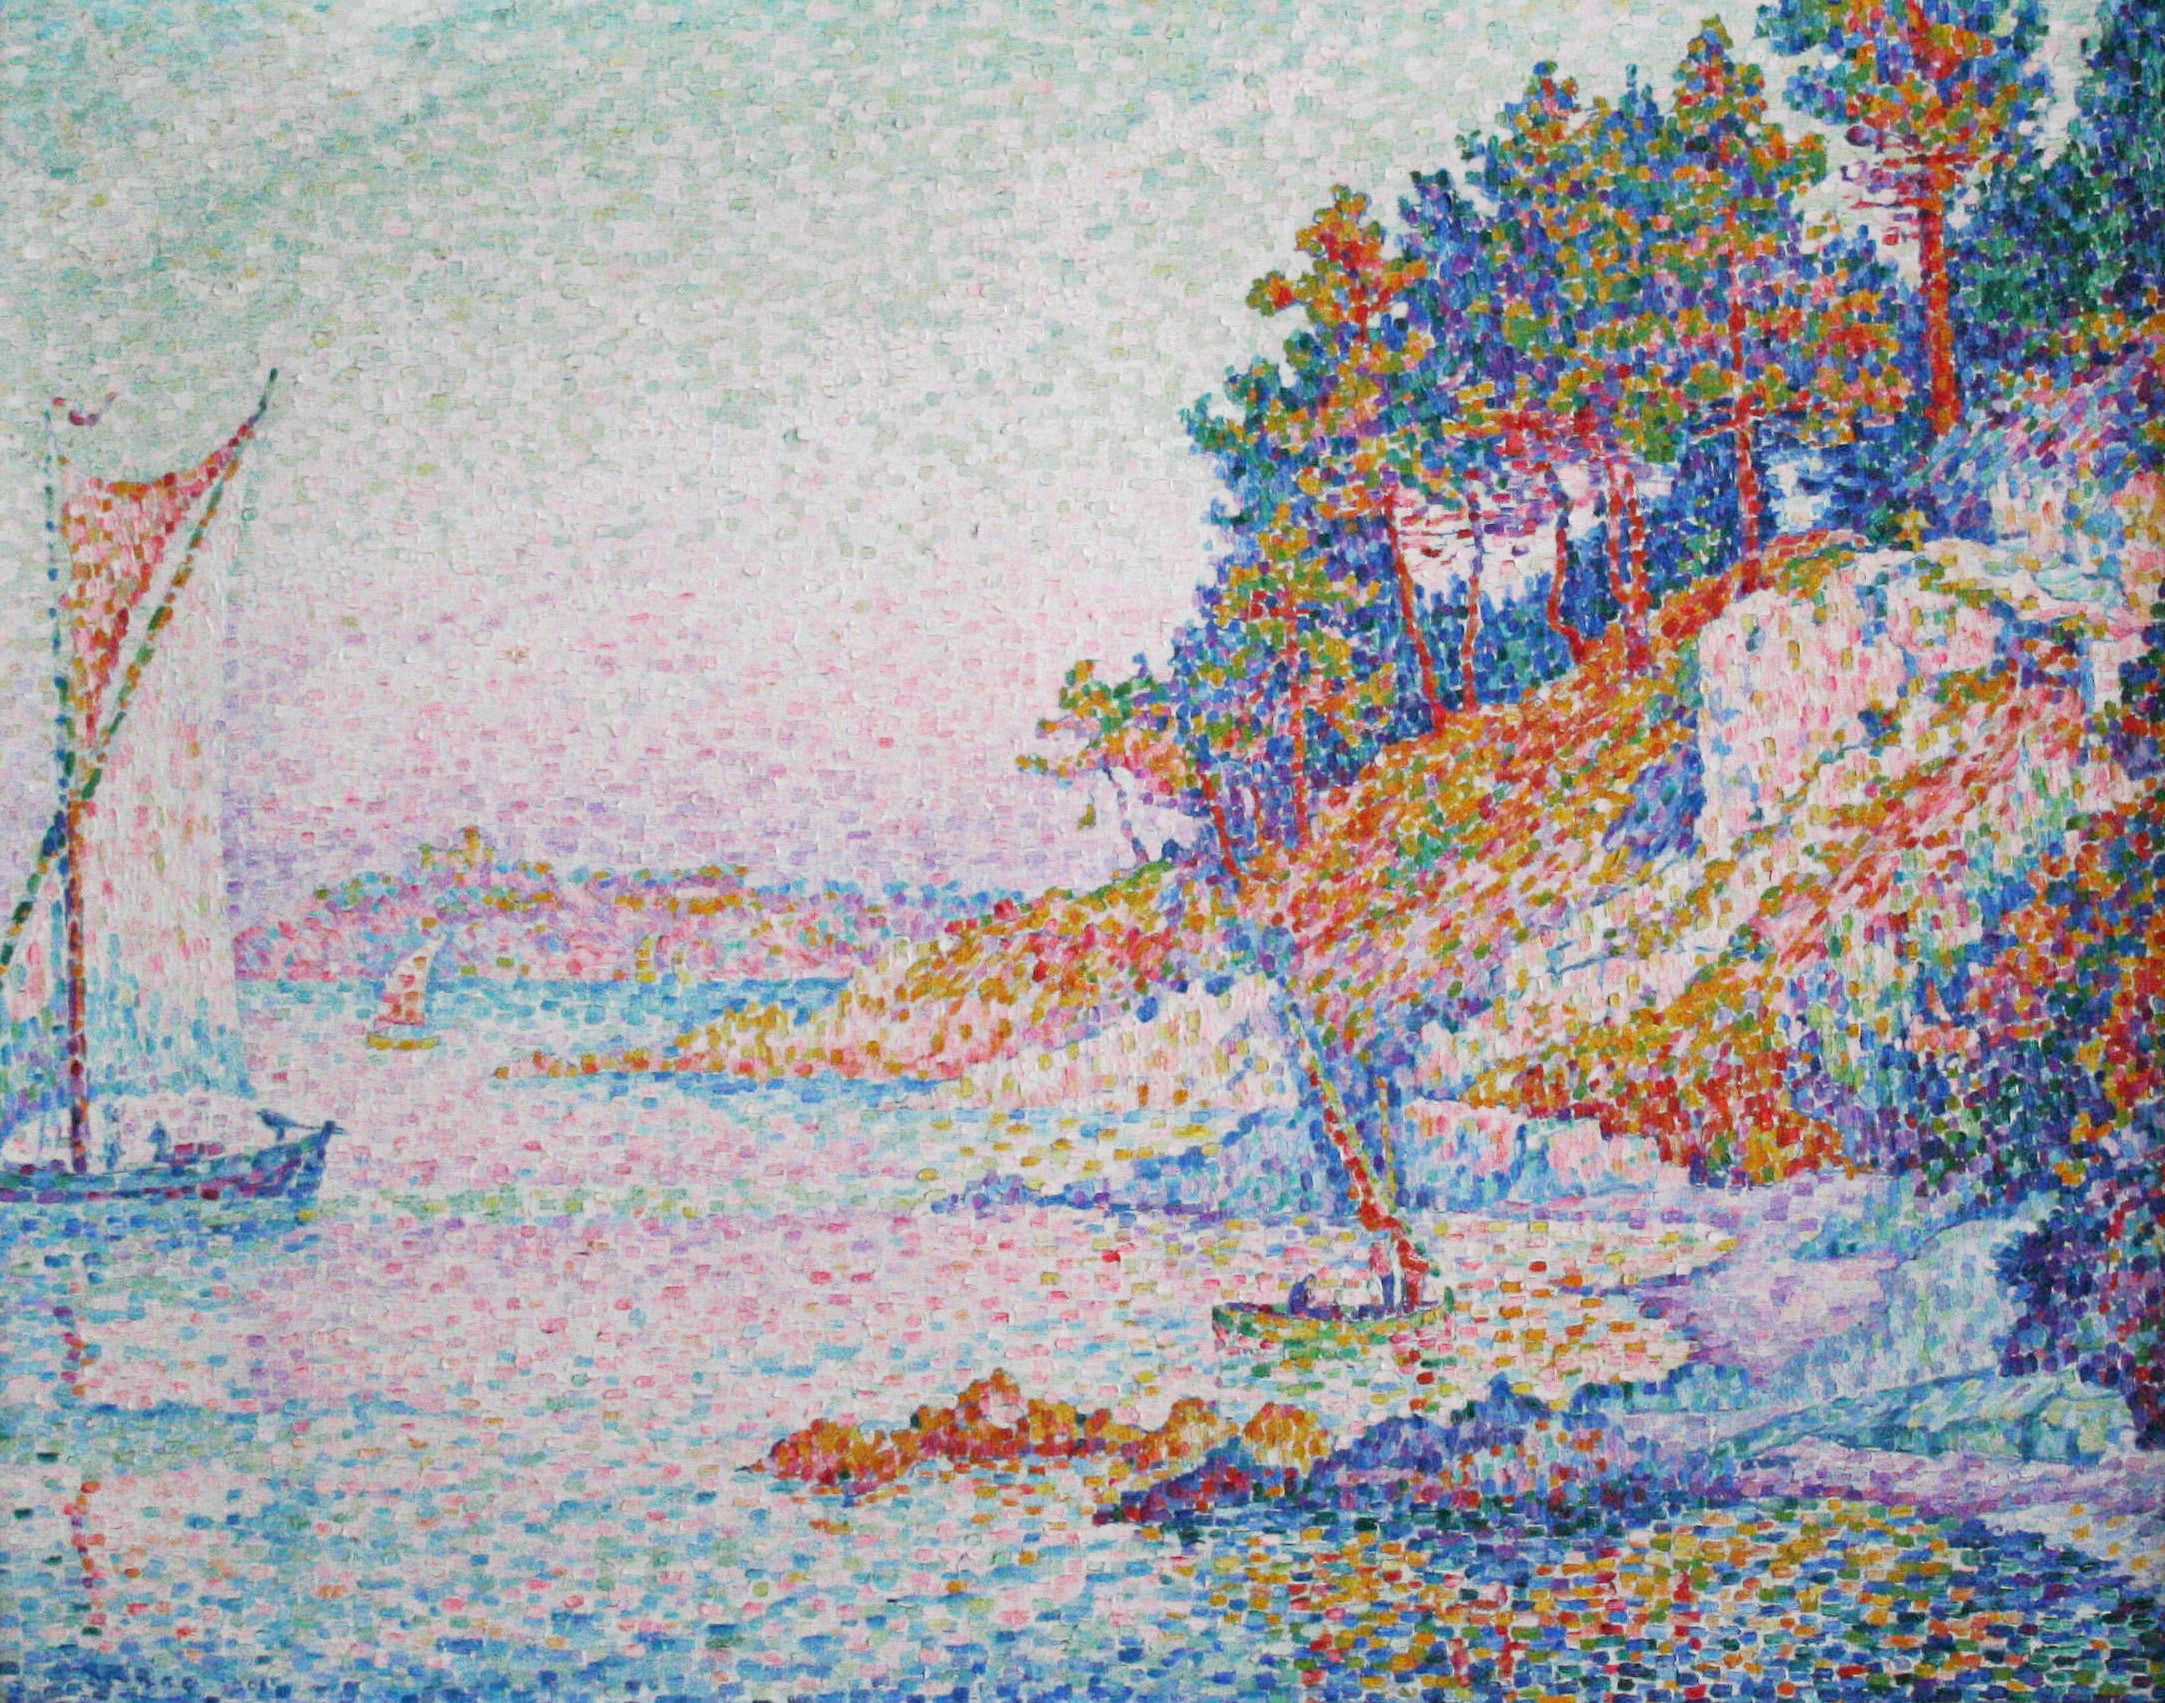 Paul Signac [Public domain], via Wikimedia Commons